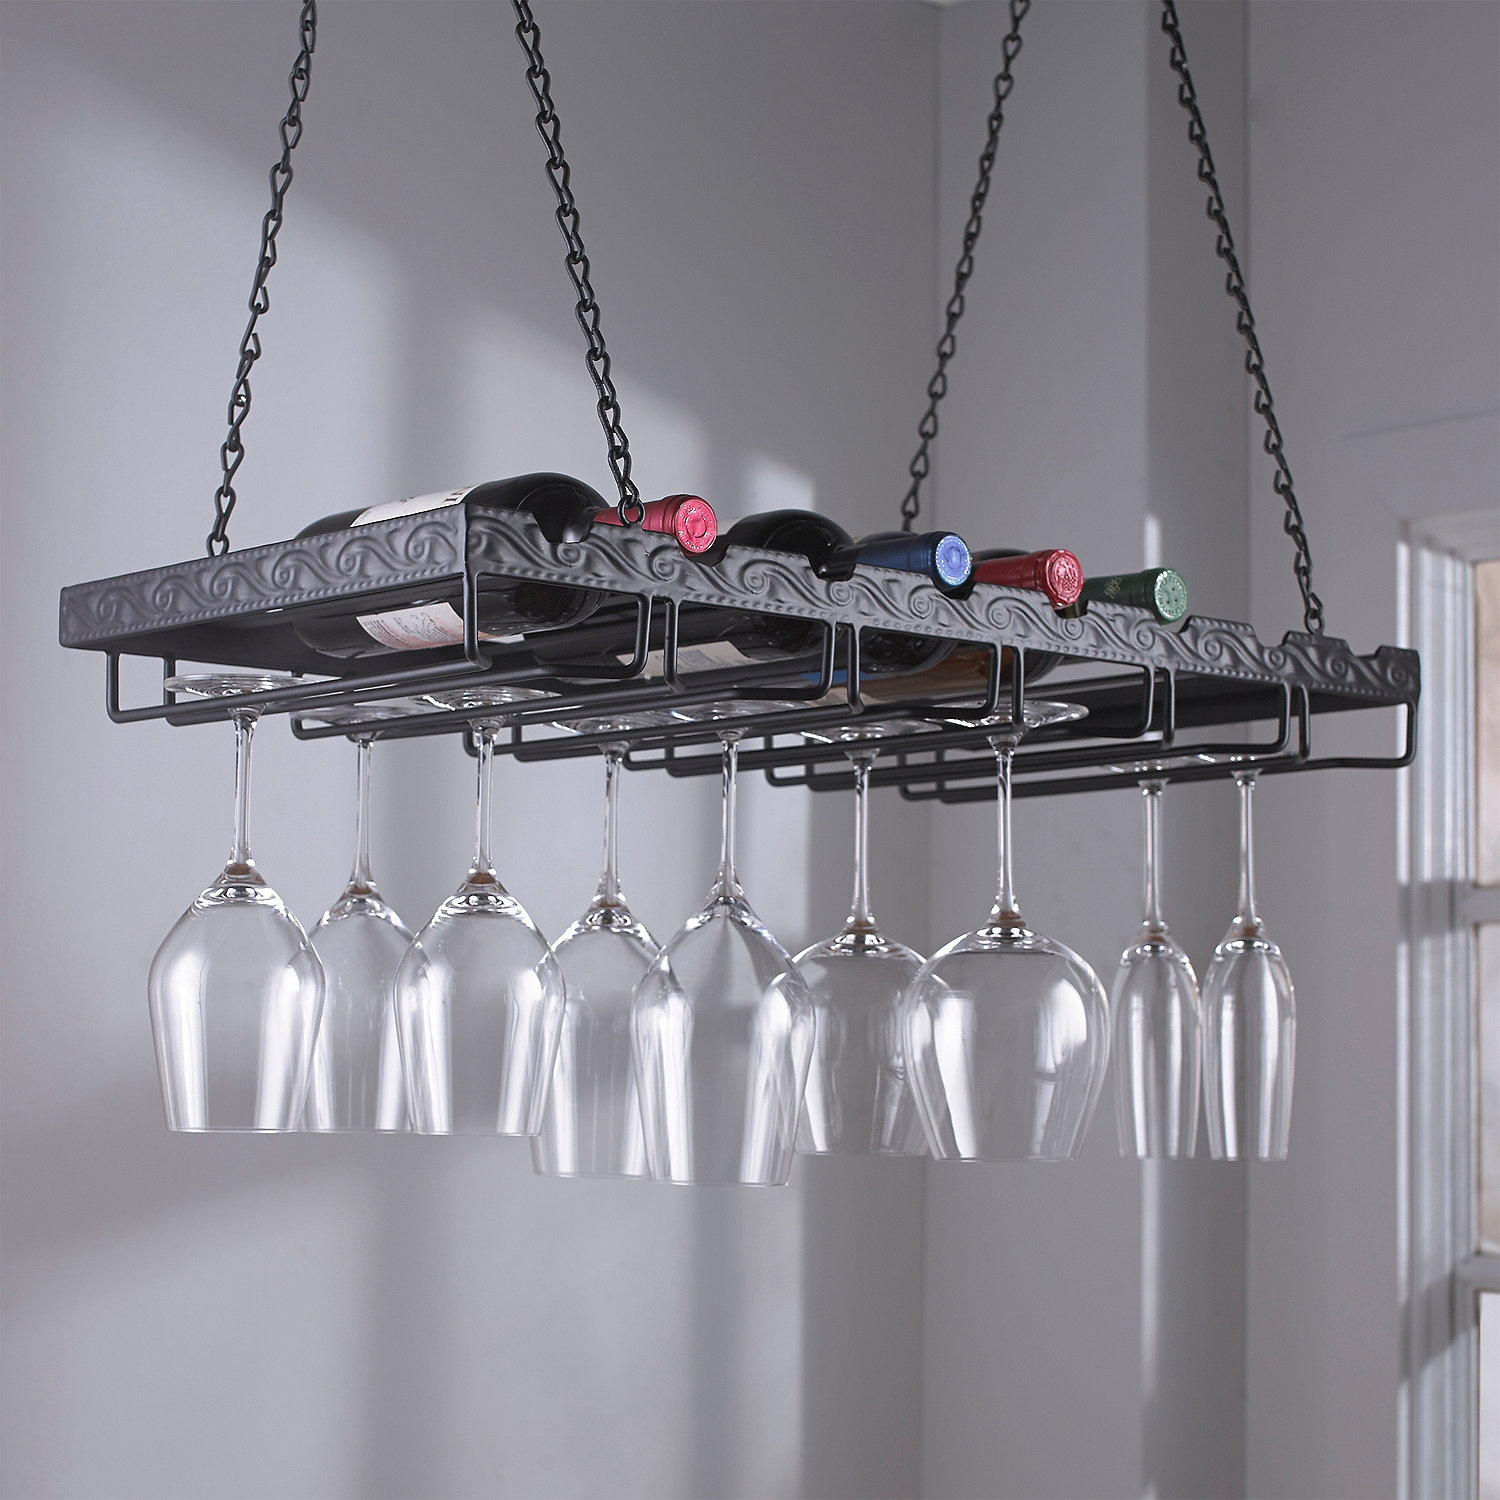 Metal Hanging Wine Glass Rack Hanging Wine Glass Rack Wine Pertaining To Hanging Glass Shelves From Ceiling (Image 11 of 15)